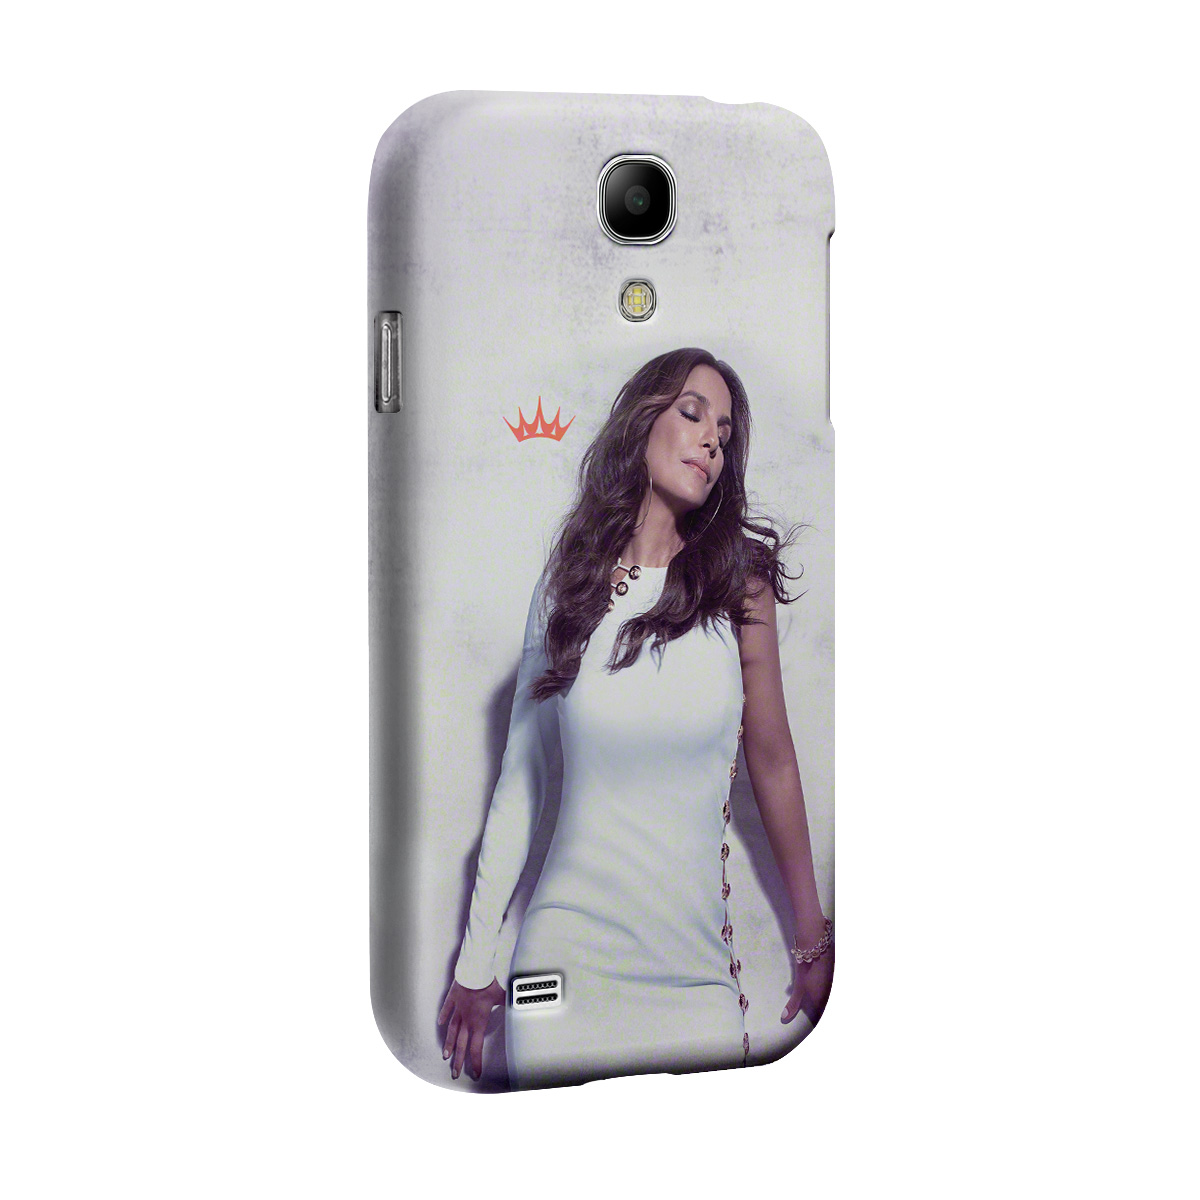 Capa para Samsung Galaxy S4 Ivete Sangalo Careless Whisper